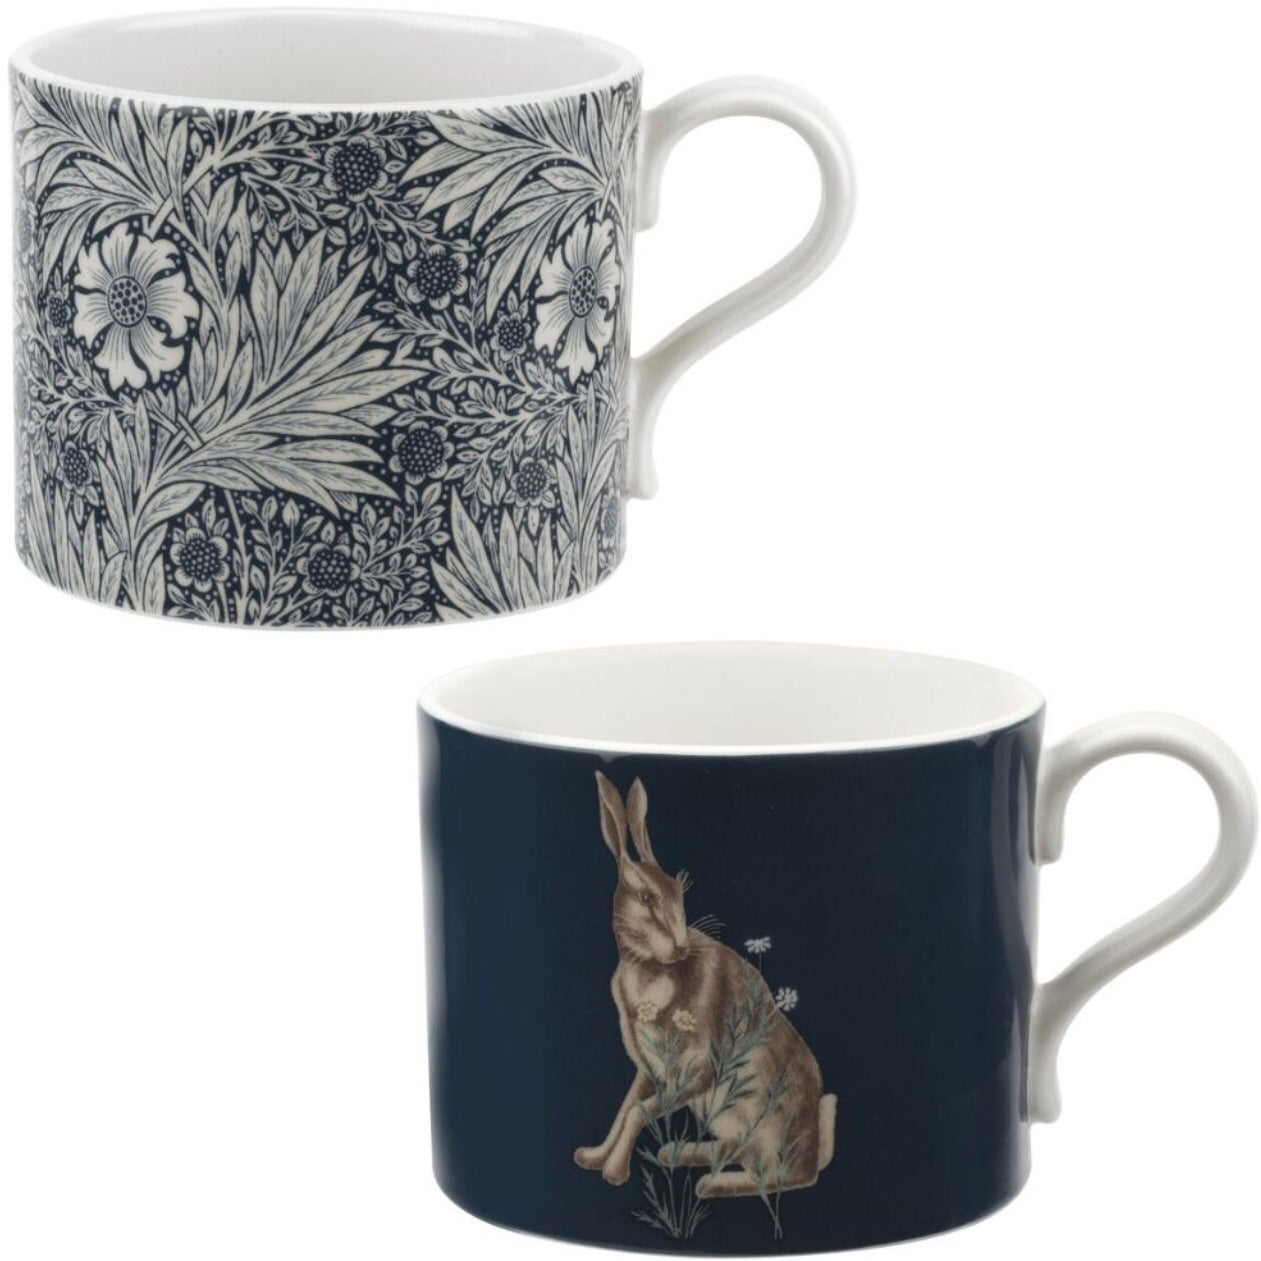 Morris & Co. Set of 2 Mugs - Marigold and Hare